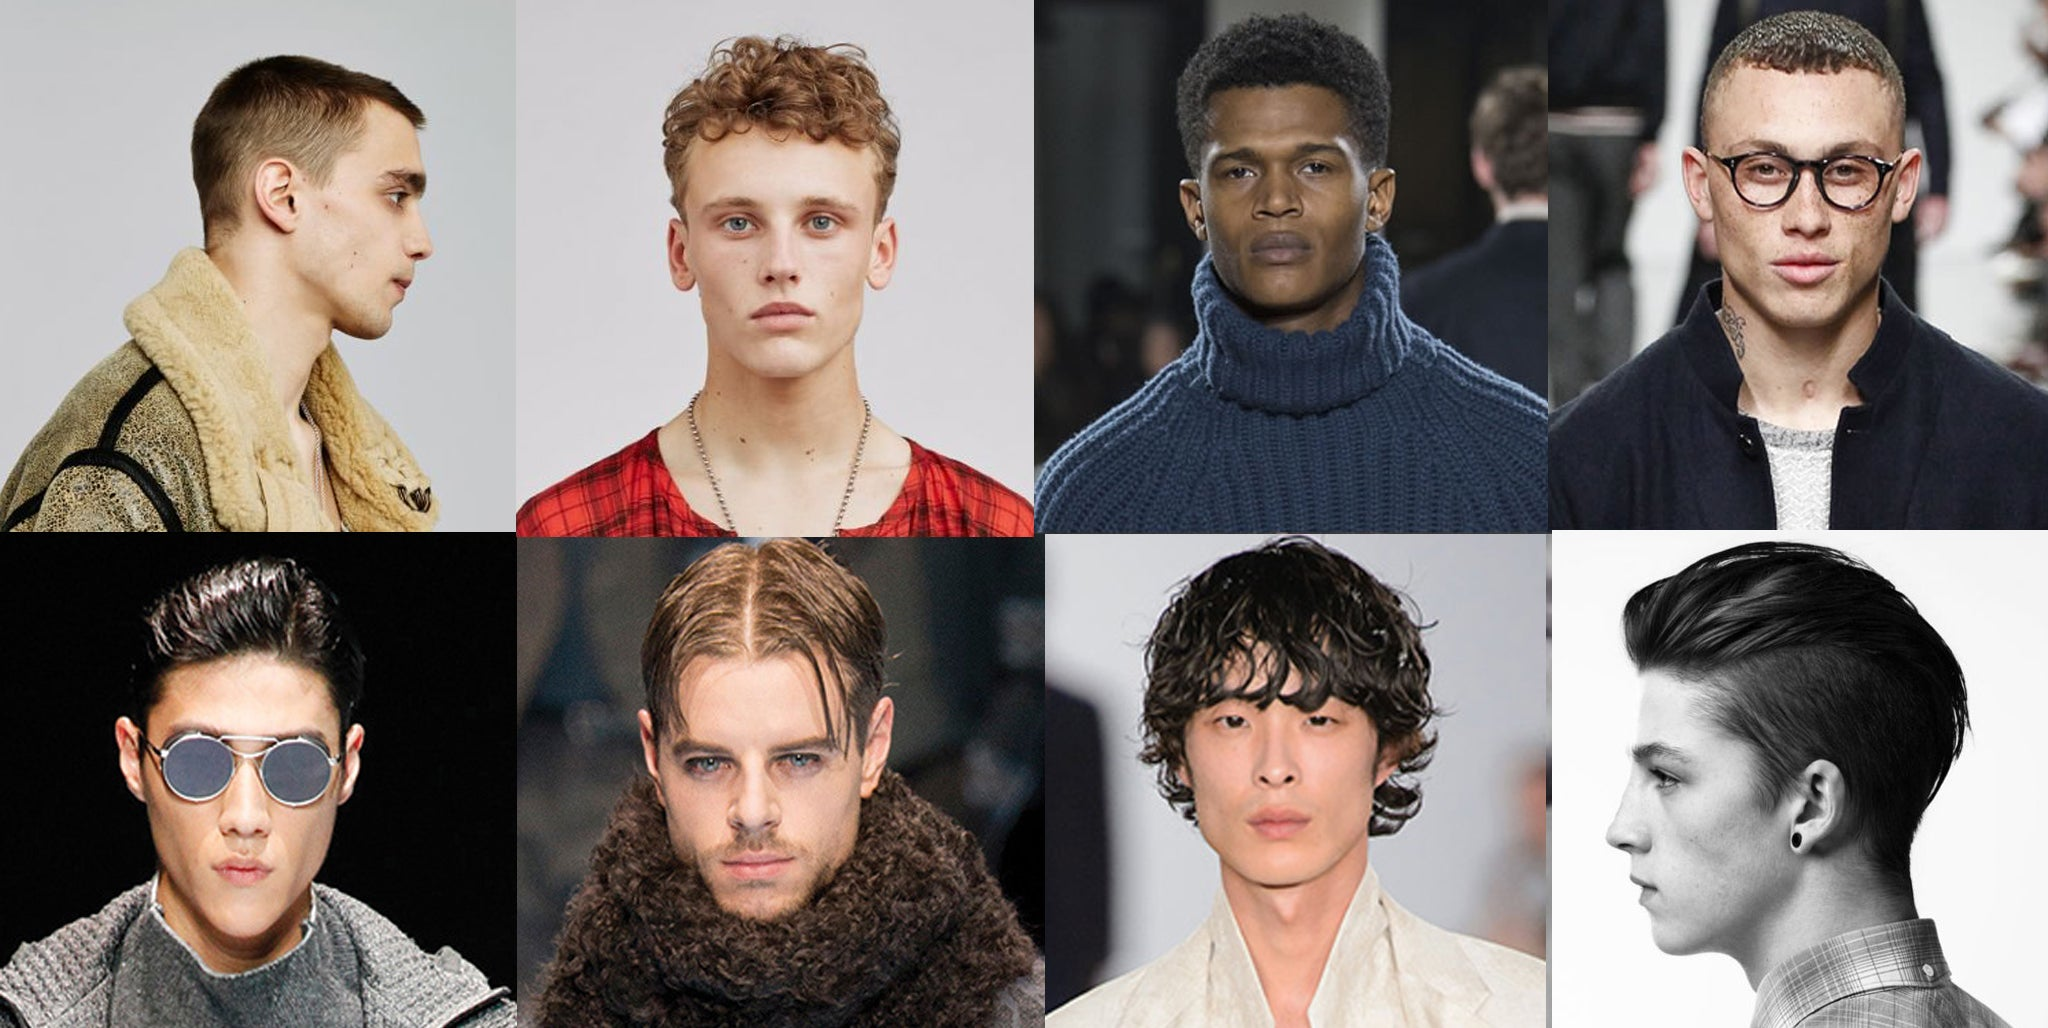 men's hair trends A/W 17 A/W 18